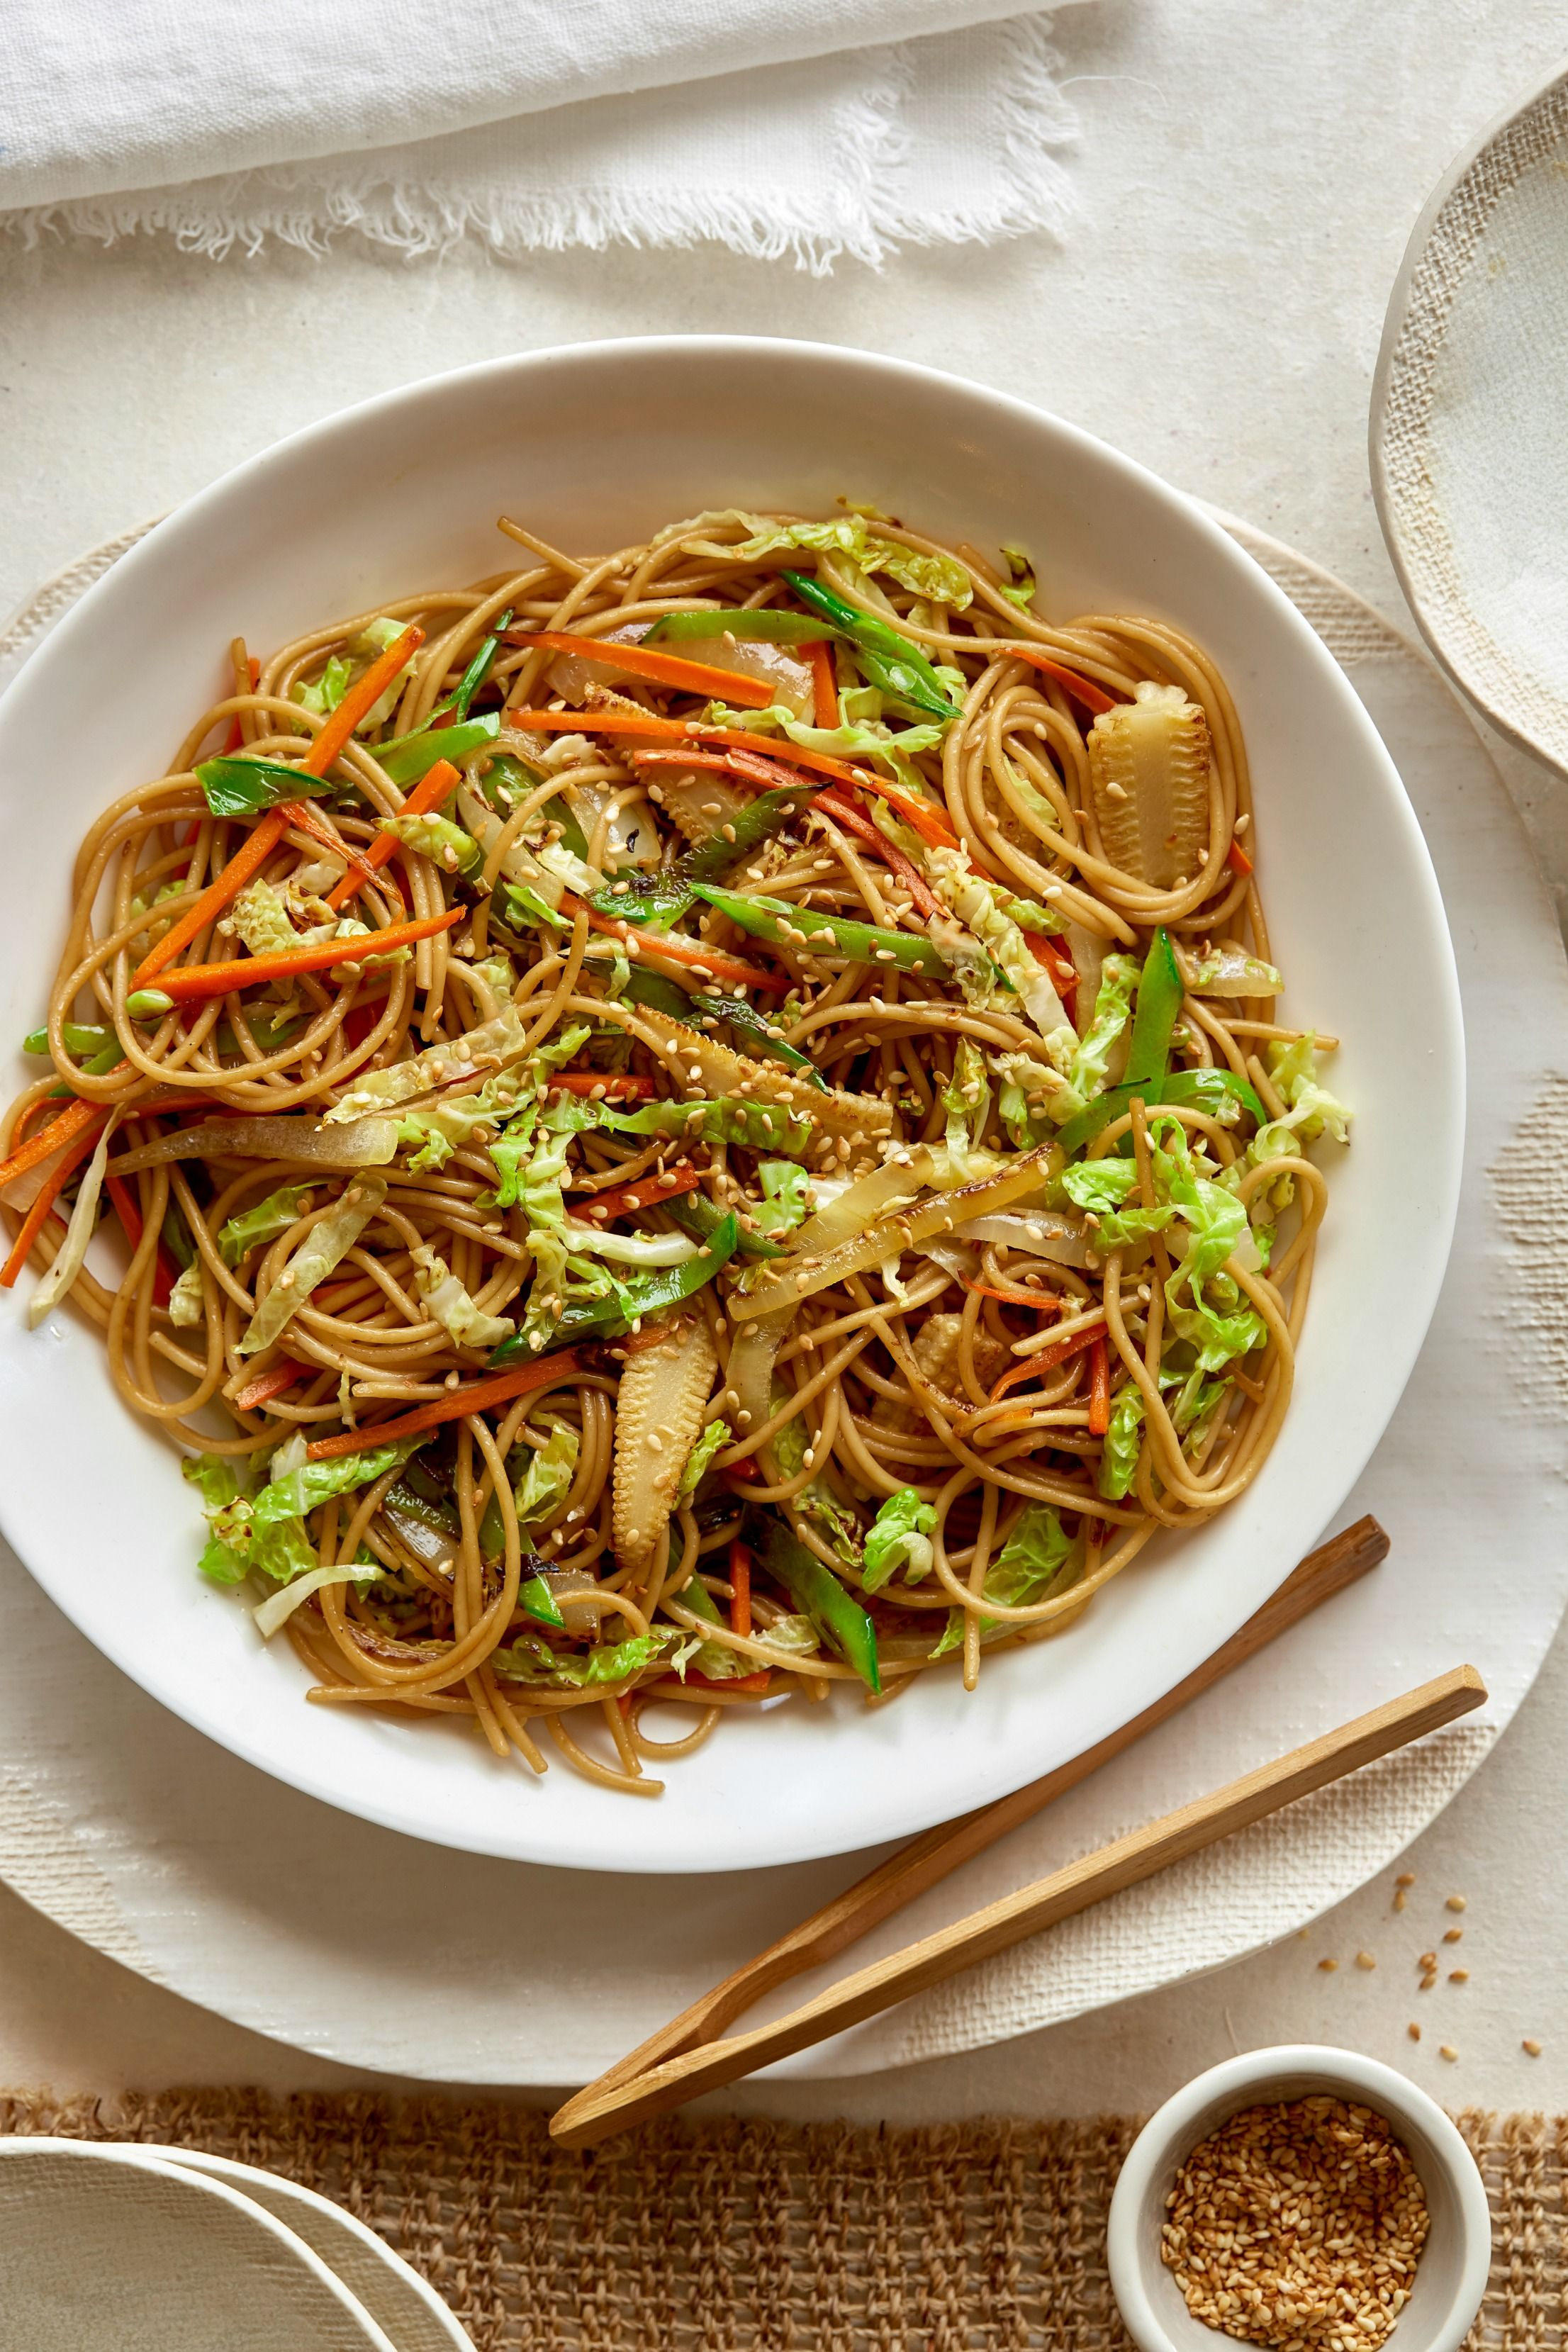 70+ Authentic Chinese Food Recipes - How To Make Chinese Food